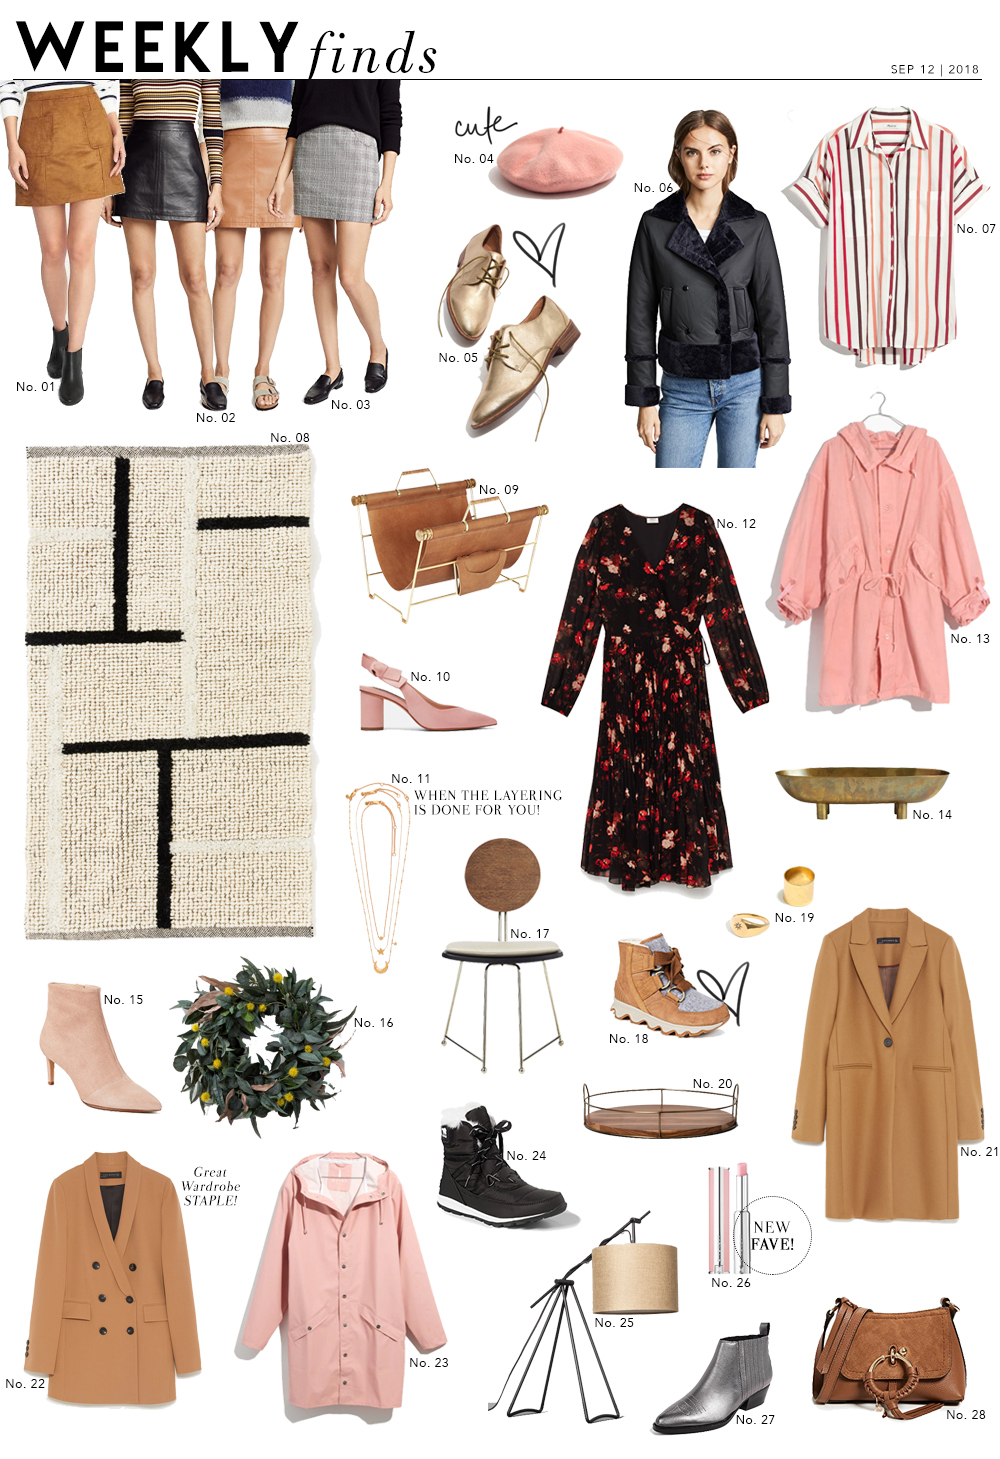 Shopping File: Recent Finds Perfect for Fall!